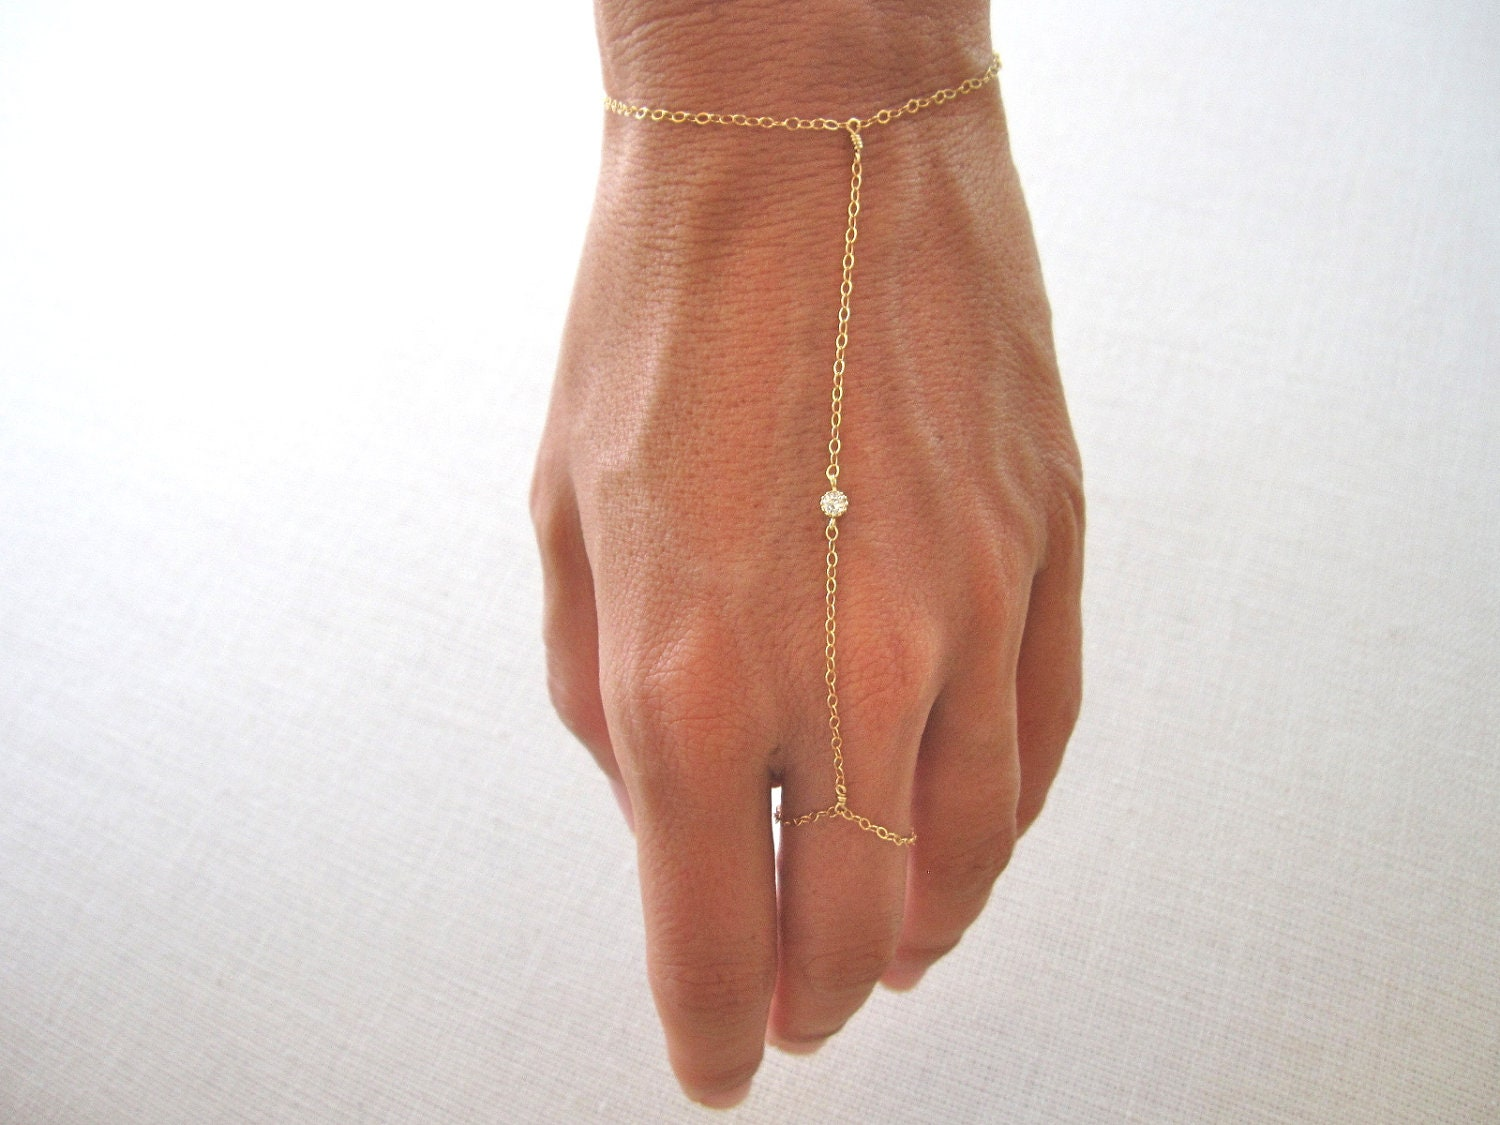 Slave Bracelet Hand Chain Delicate 14k Gold Filled Chain